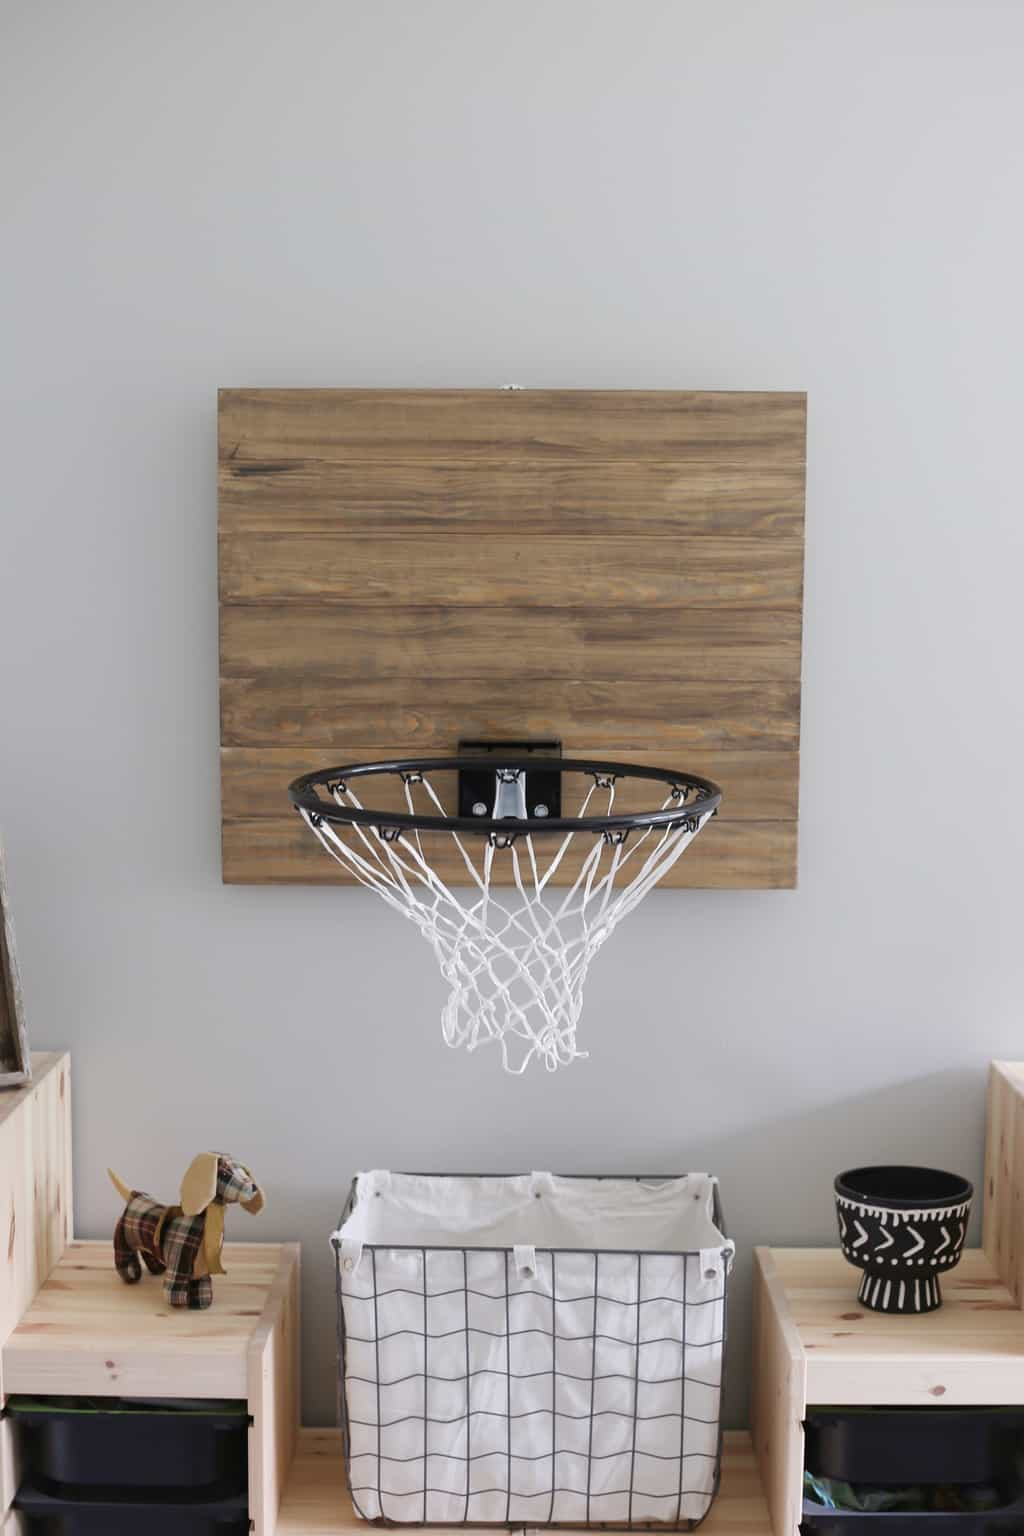 Basketball hoop used as a laundry basket